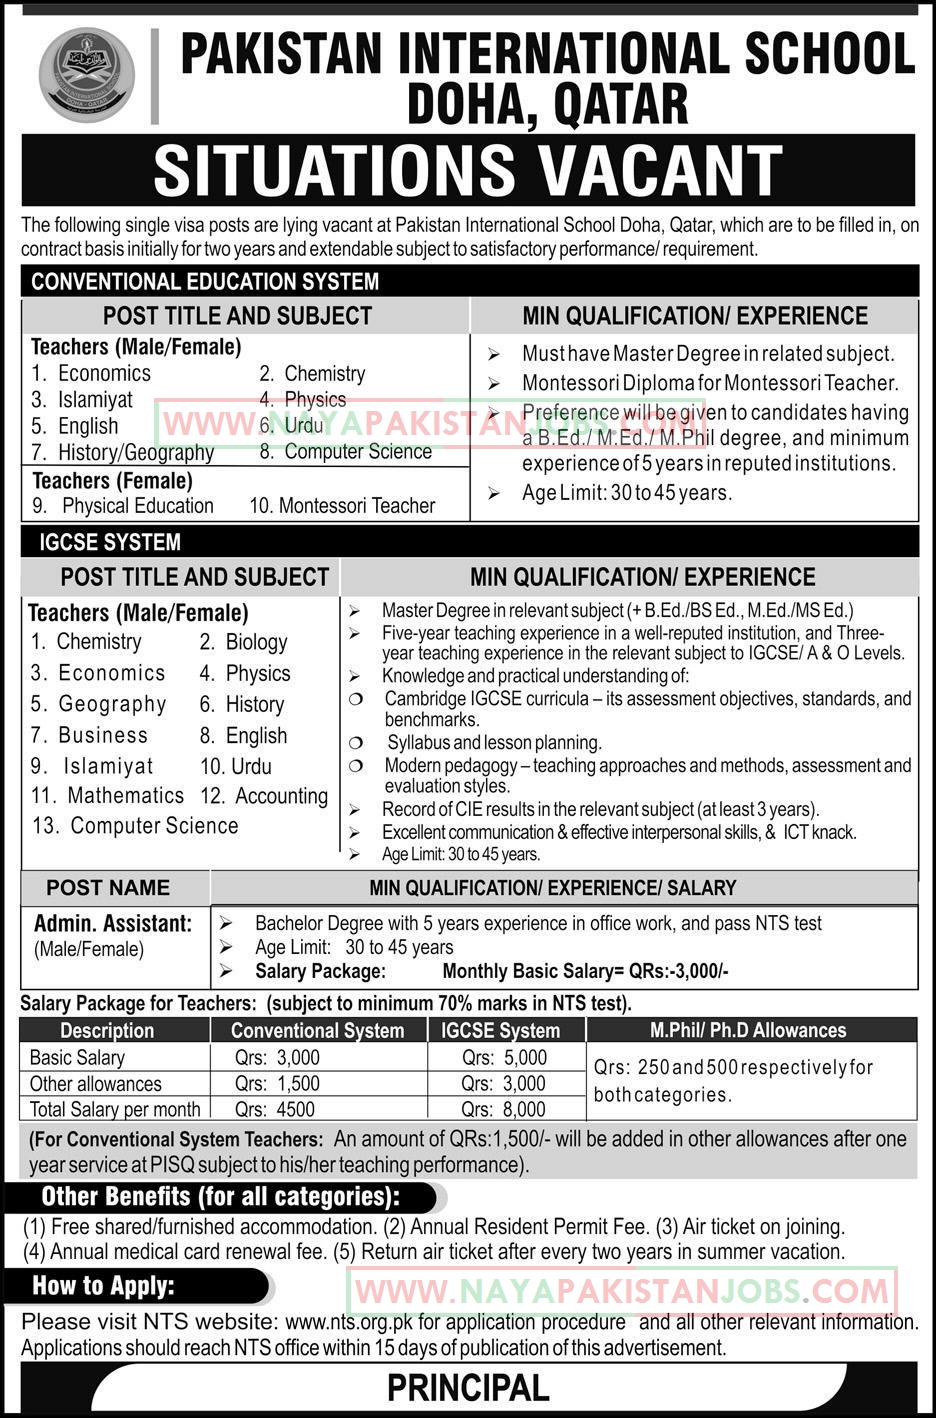 Pakistan International School Doha Qatar Jobs Jan 2019 for Teachers, Pakistan International School Doha Qatar Jobs for teachrs